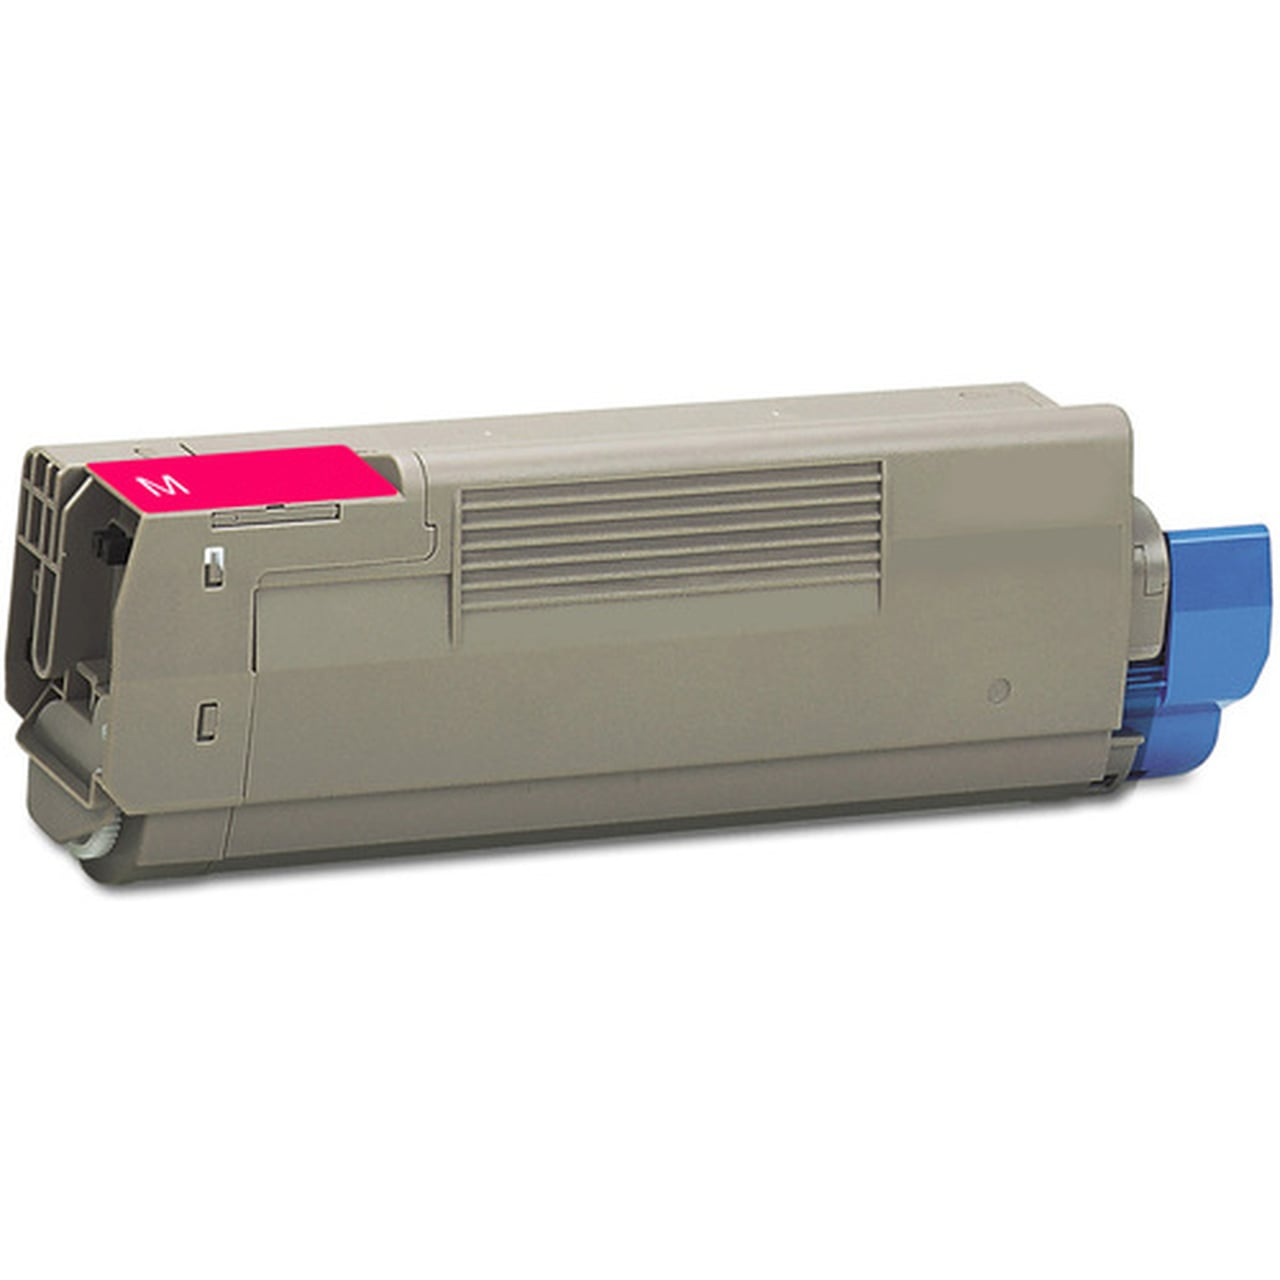 46507502 Toner Cartridge - Okidata Compatible (Magenta)